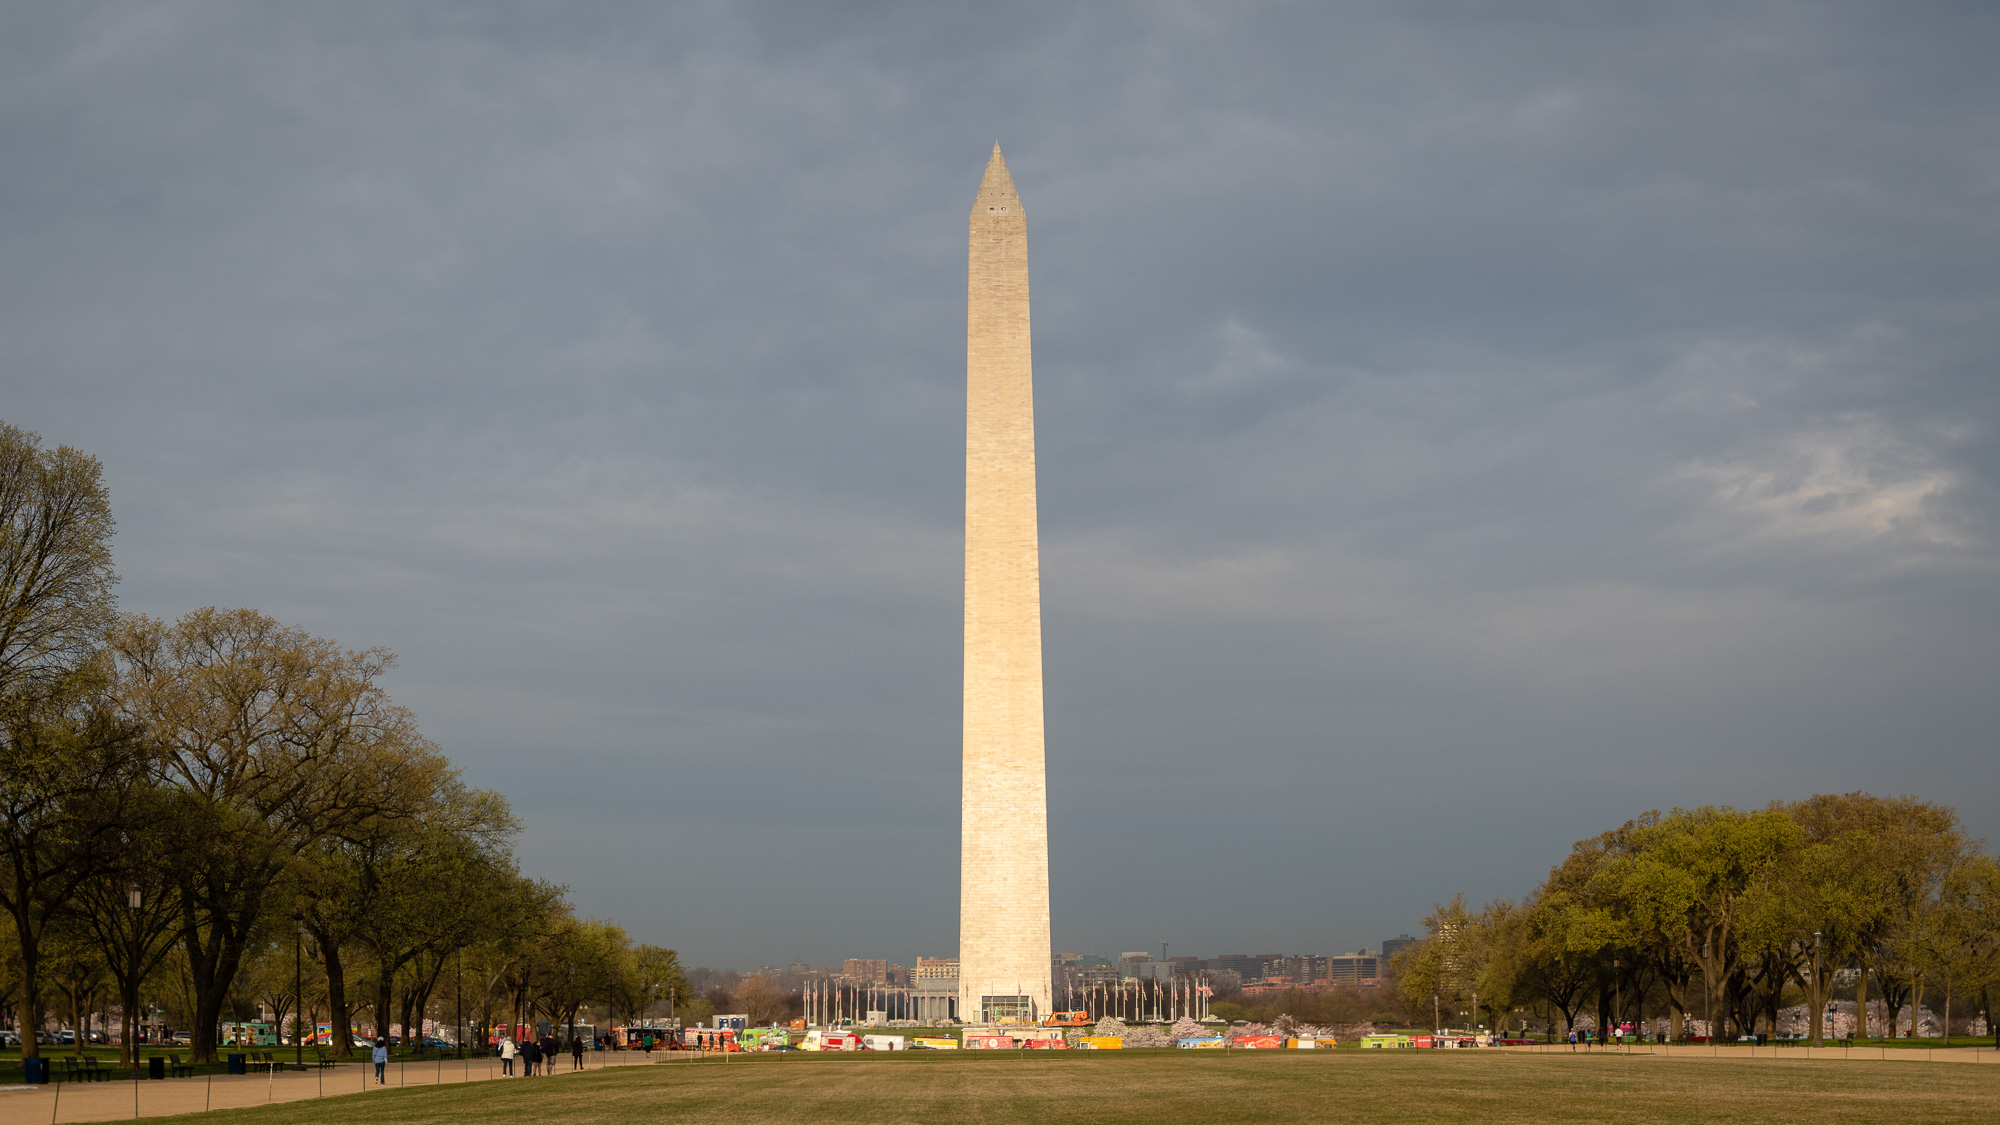 3 Image stitched panorama of the Washington Monument.